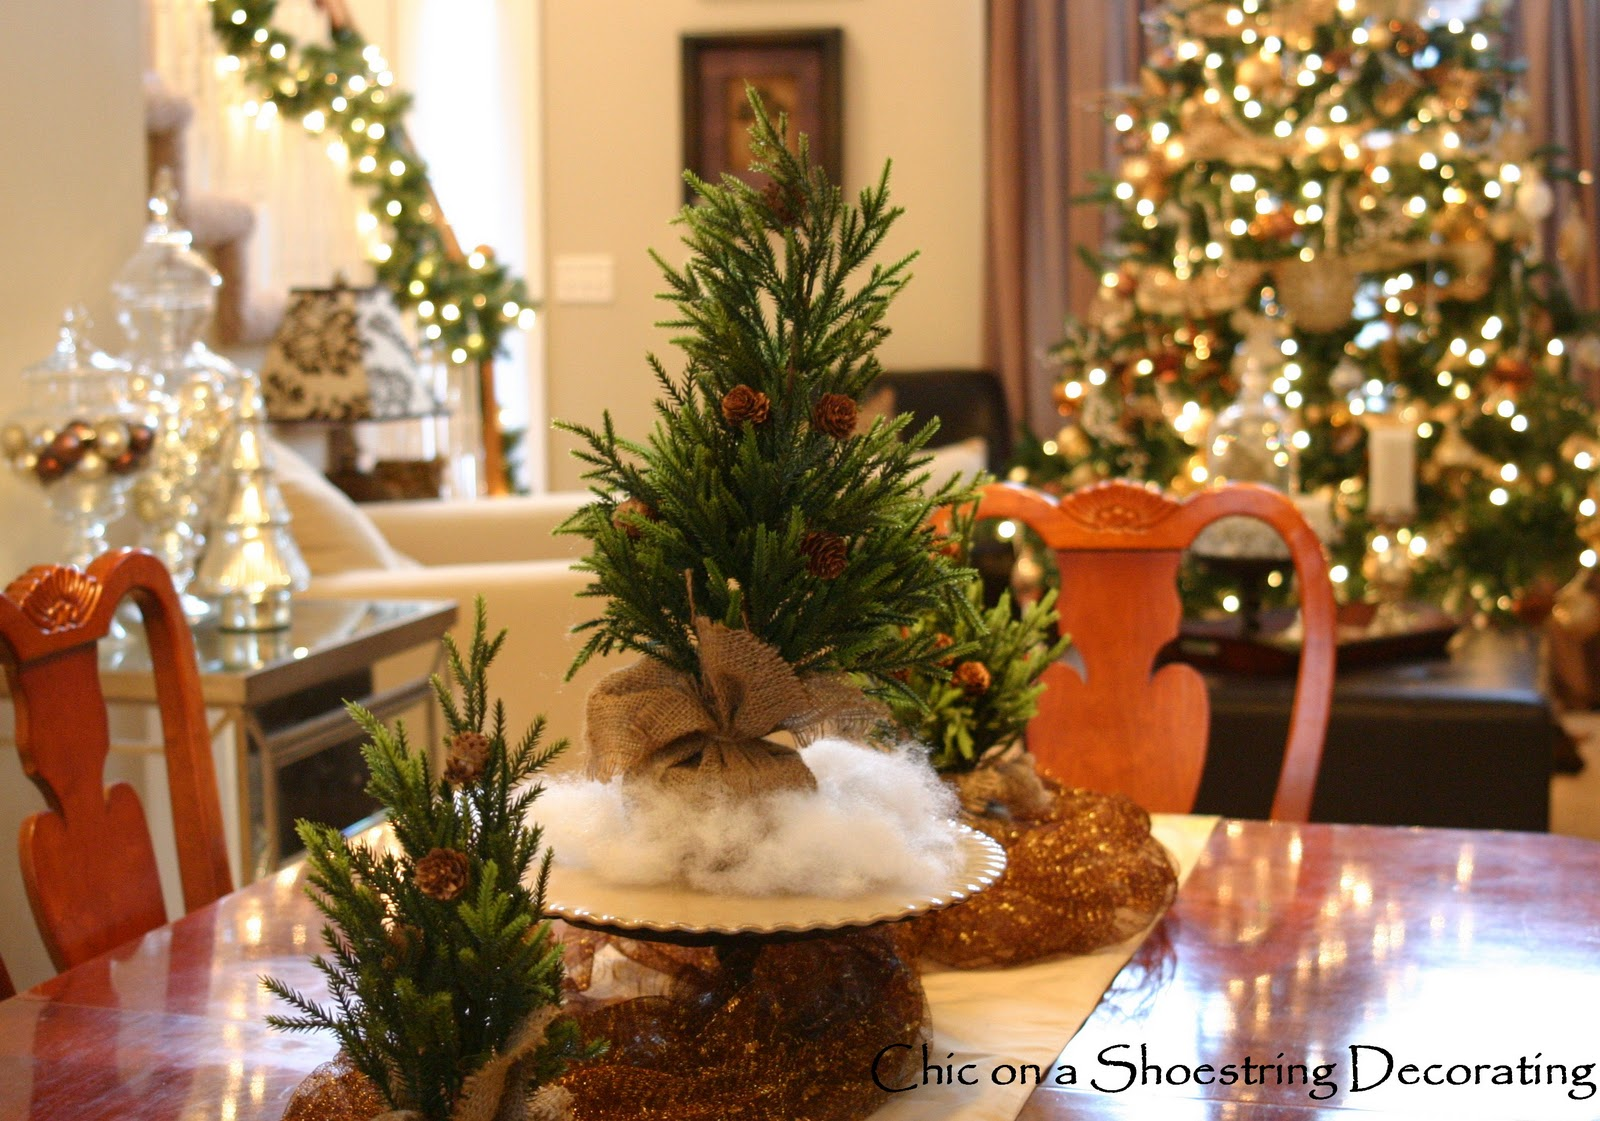 Chic On A Shoestring Decorating Christmas Home Tour 2011 Part 1